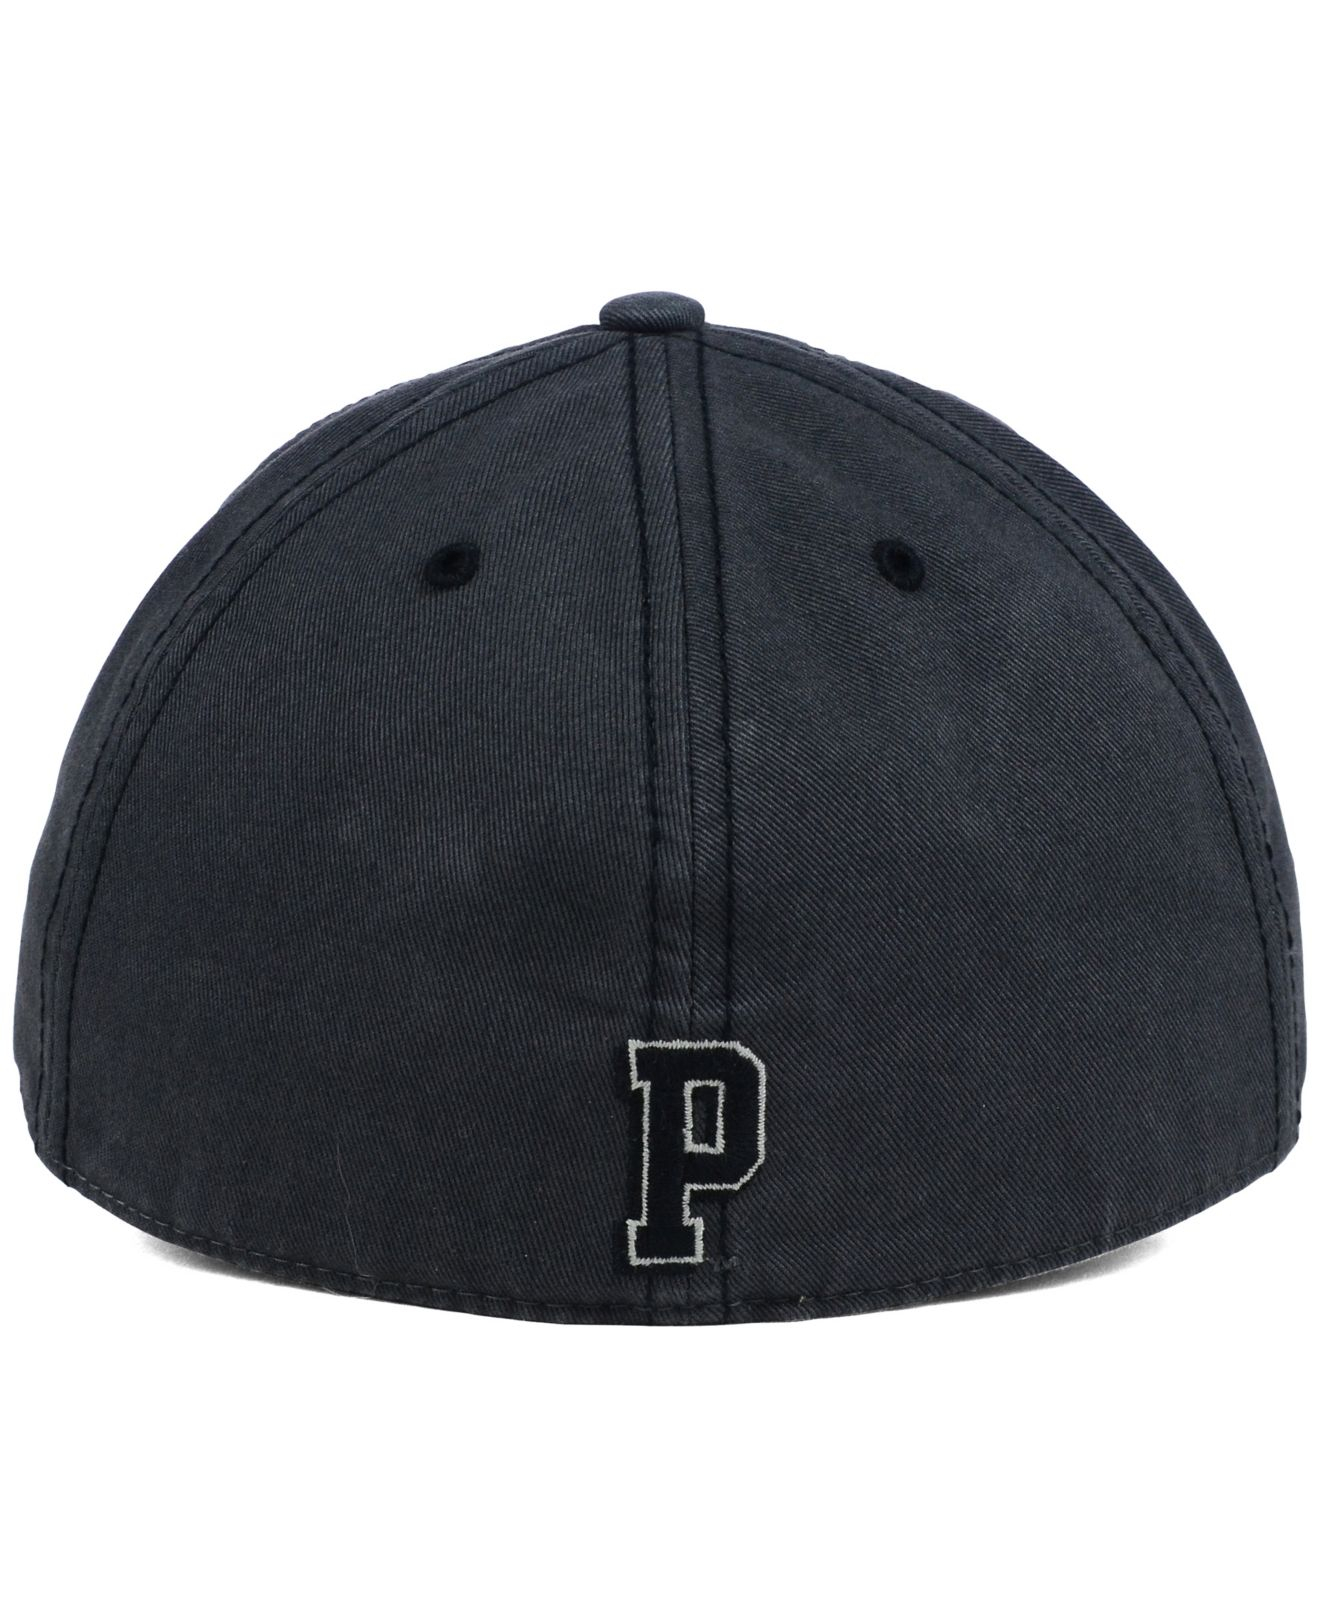 new style 61fe2 93665 ... france lyst 47 brand pittsburgh panthers sachem cap in gray for men  a969f 28cb7